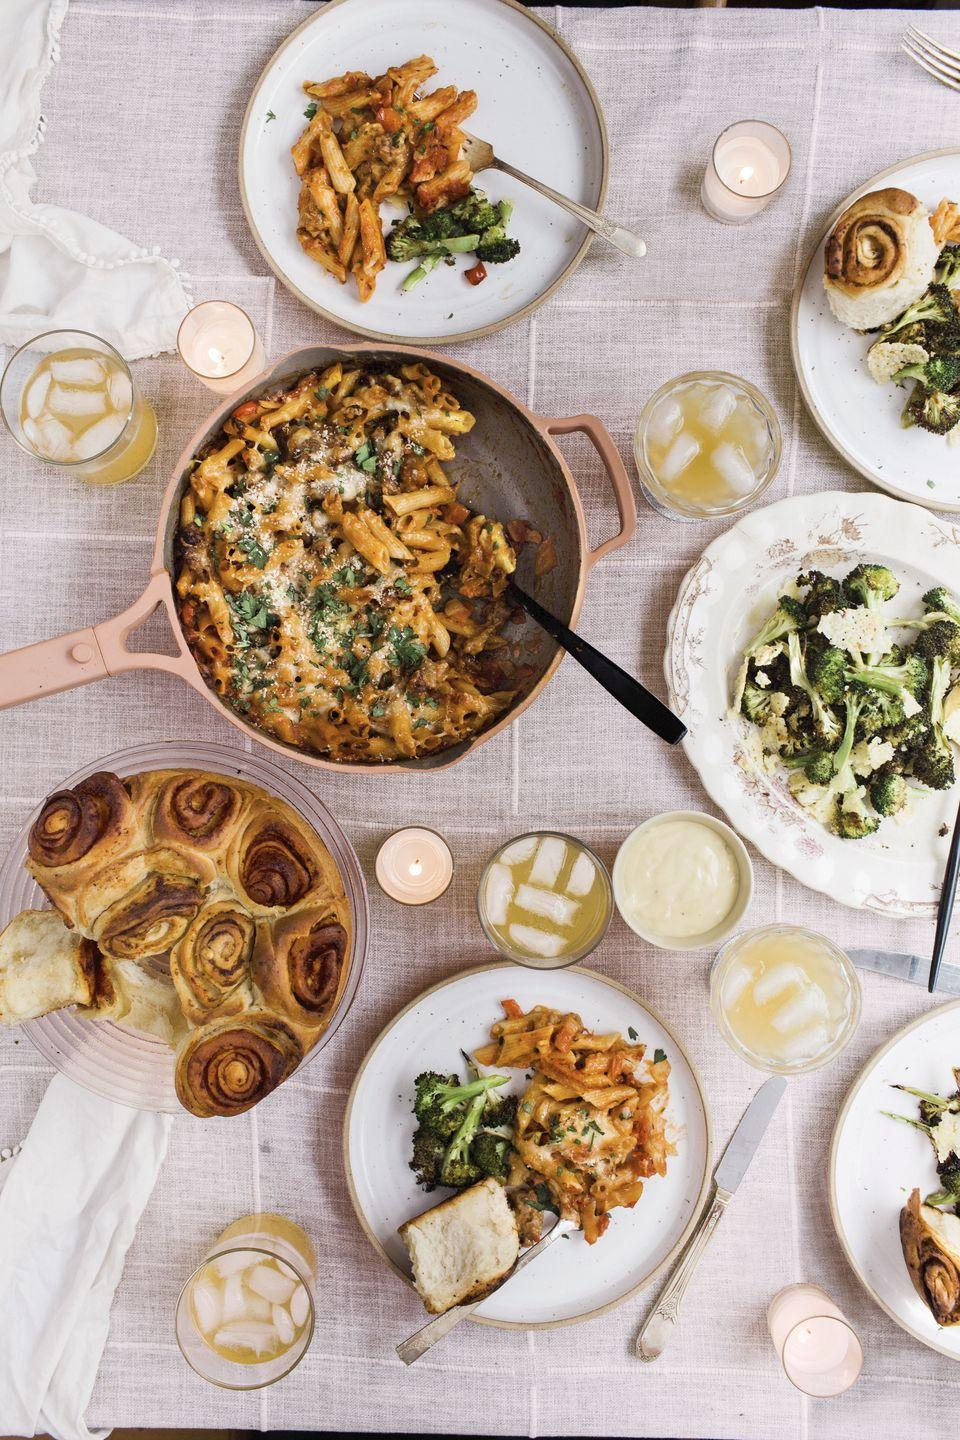 """<p>Surprise Mom with this ooey-gooey one-pot pasta bake that's surprisingly easy to make — and easy to clean up!</p><p><a href=""""https://www.womansday.com/food-recipes/a34621007/cheesy-sausage-and-pepper-pasta-bake-recipe/"""" rel=""""nofollow noopener"""" target=""""_blank"""" data-ylk=""""slk:Get the recipe for Cheesy Sausage and Pepper Pasta Bake."""" class=""""link rapid-noclick-resp""""><em>Get the recipe for Cheesy Sausage and Pepper Pasta Bake.</em></a></p>"""